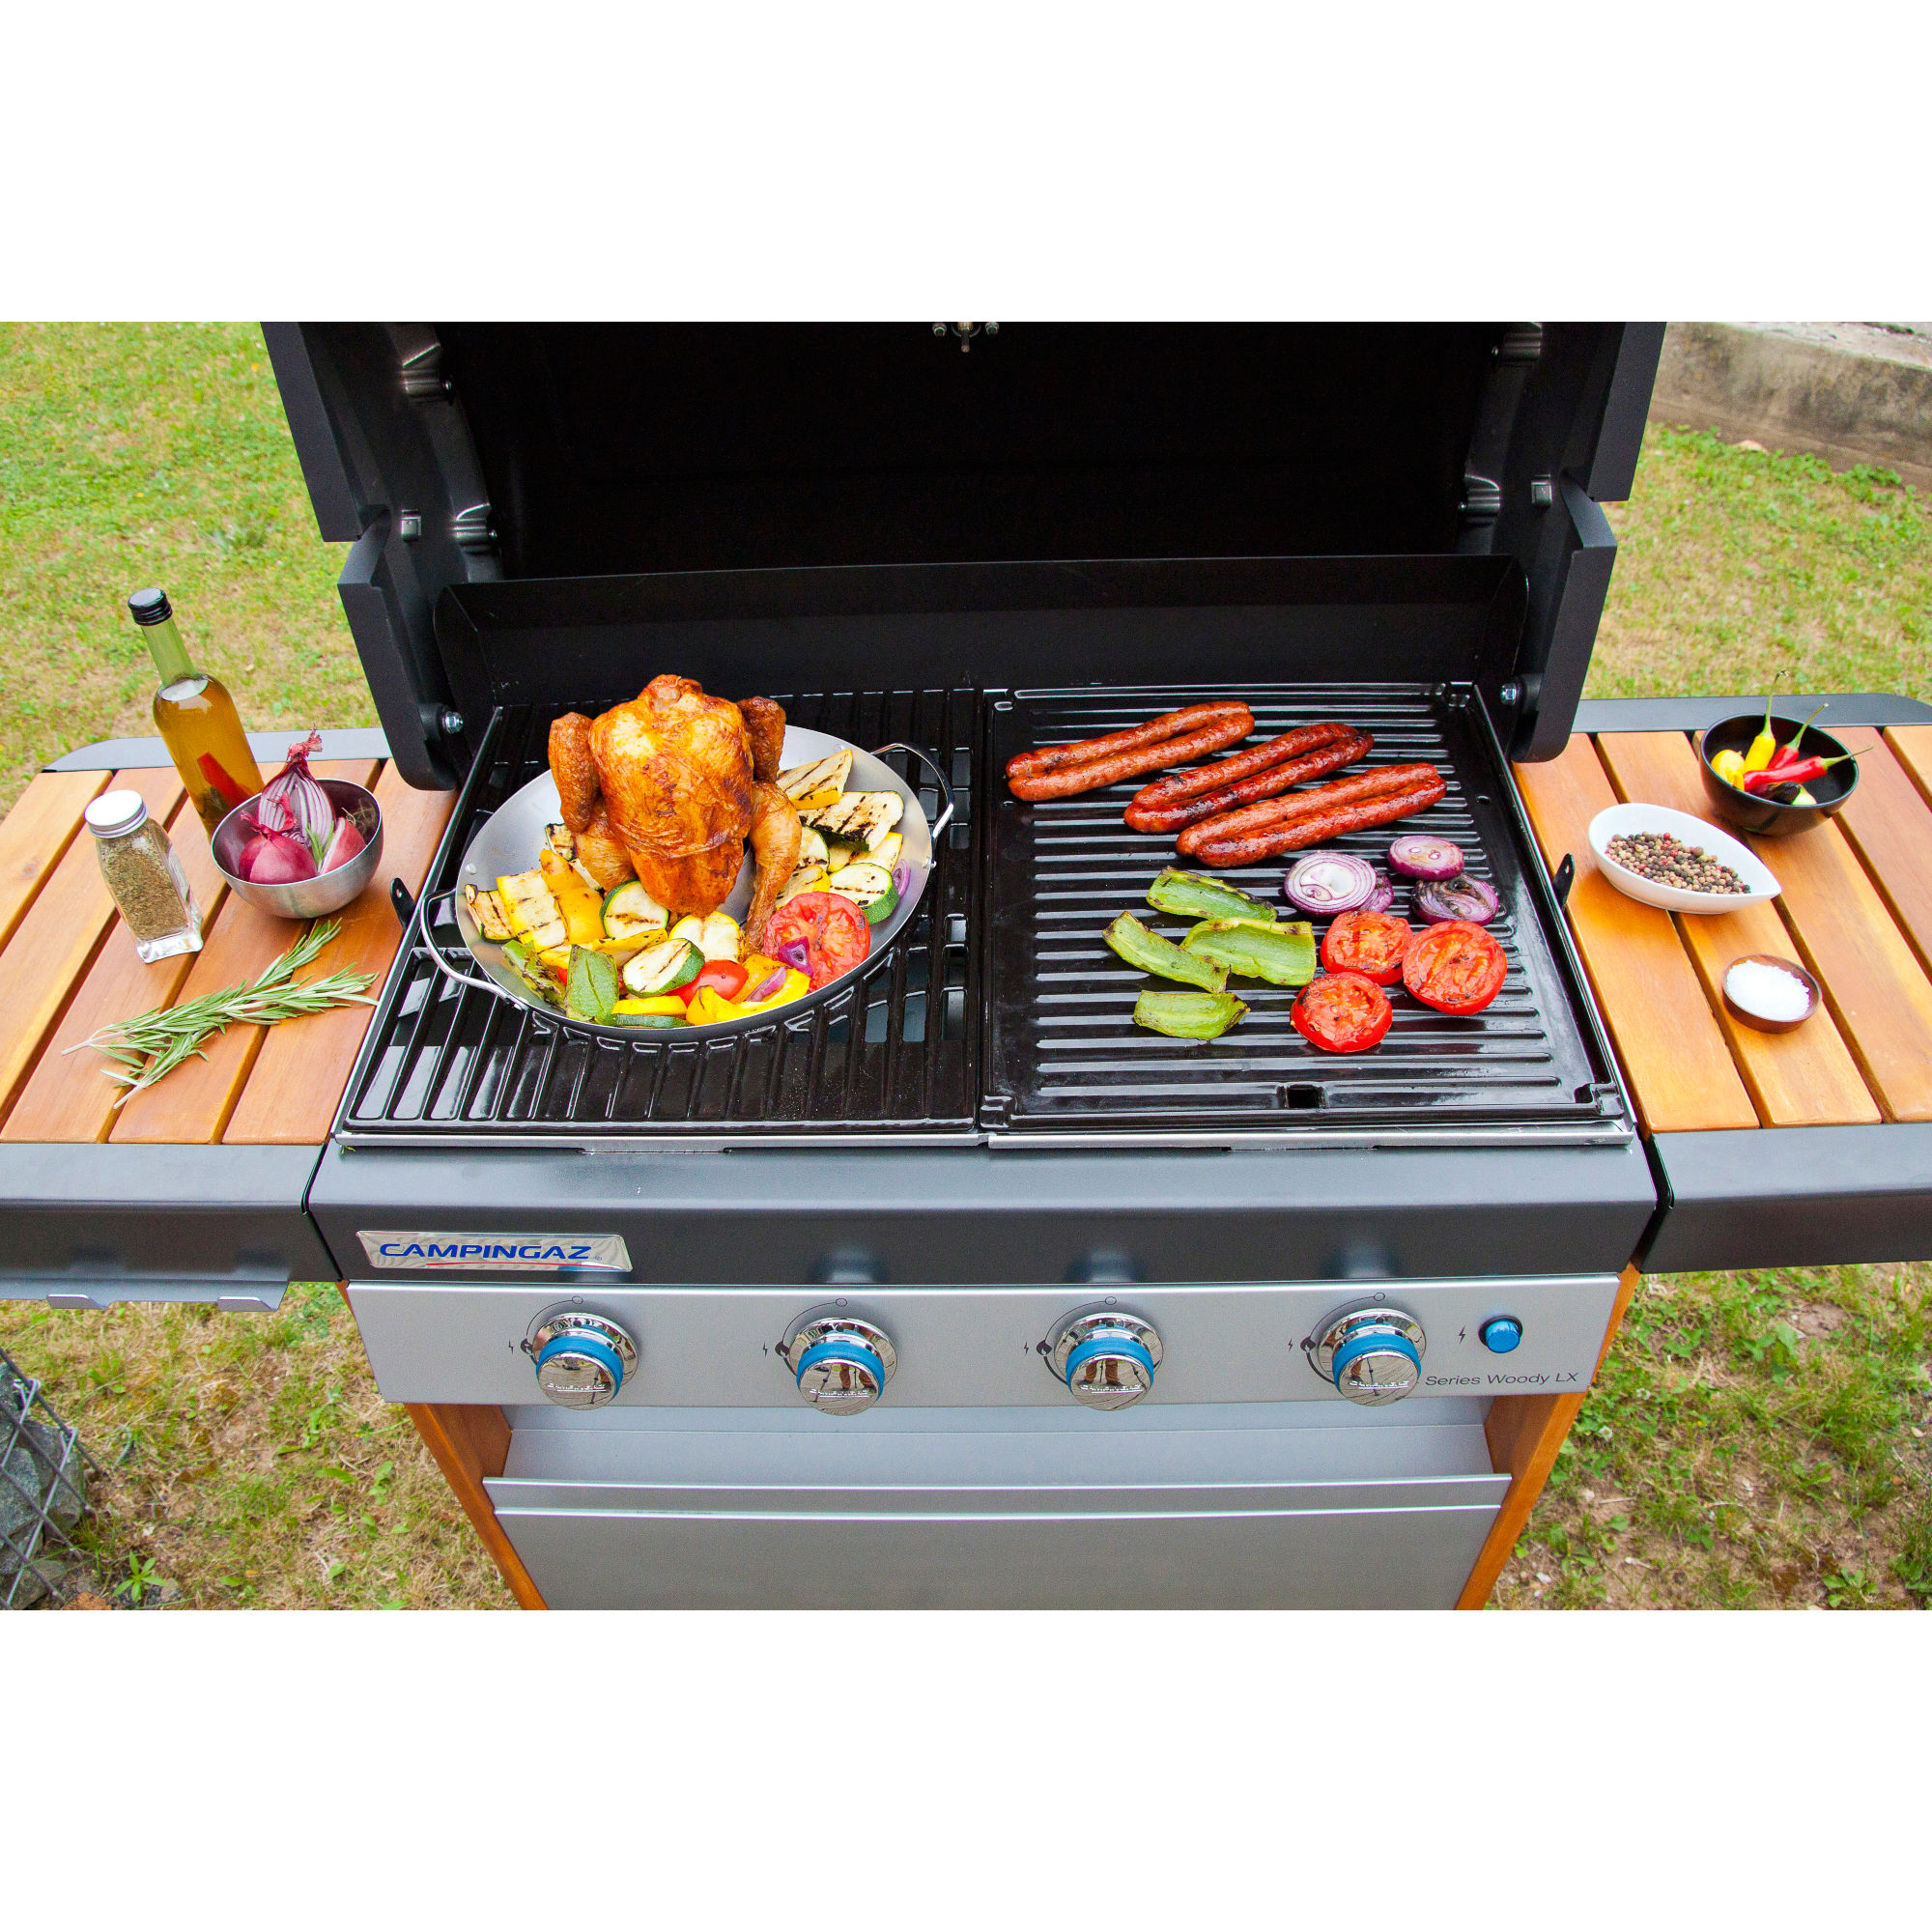 Culinary Modular Poultry Roaster